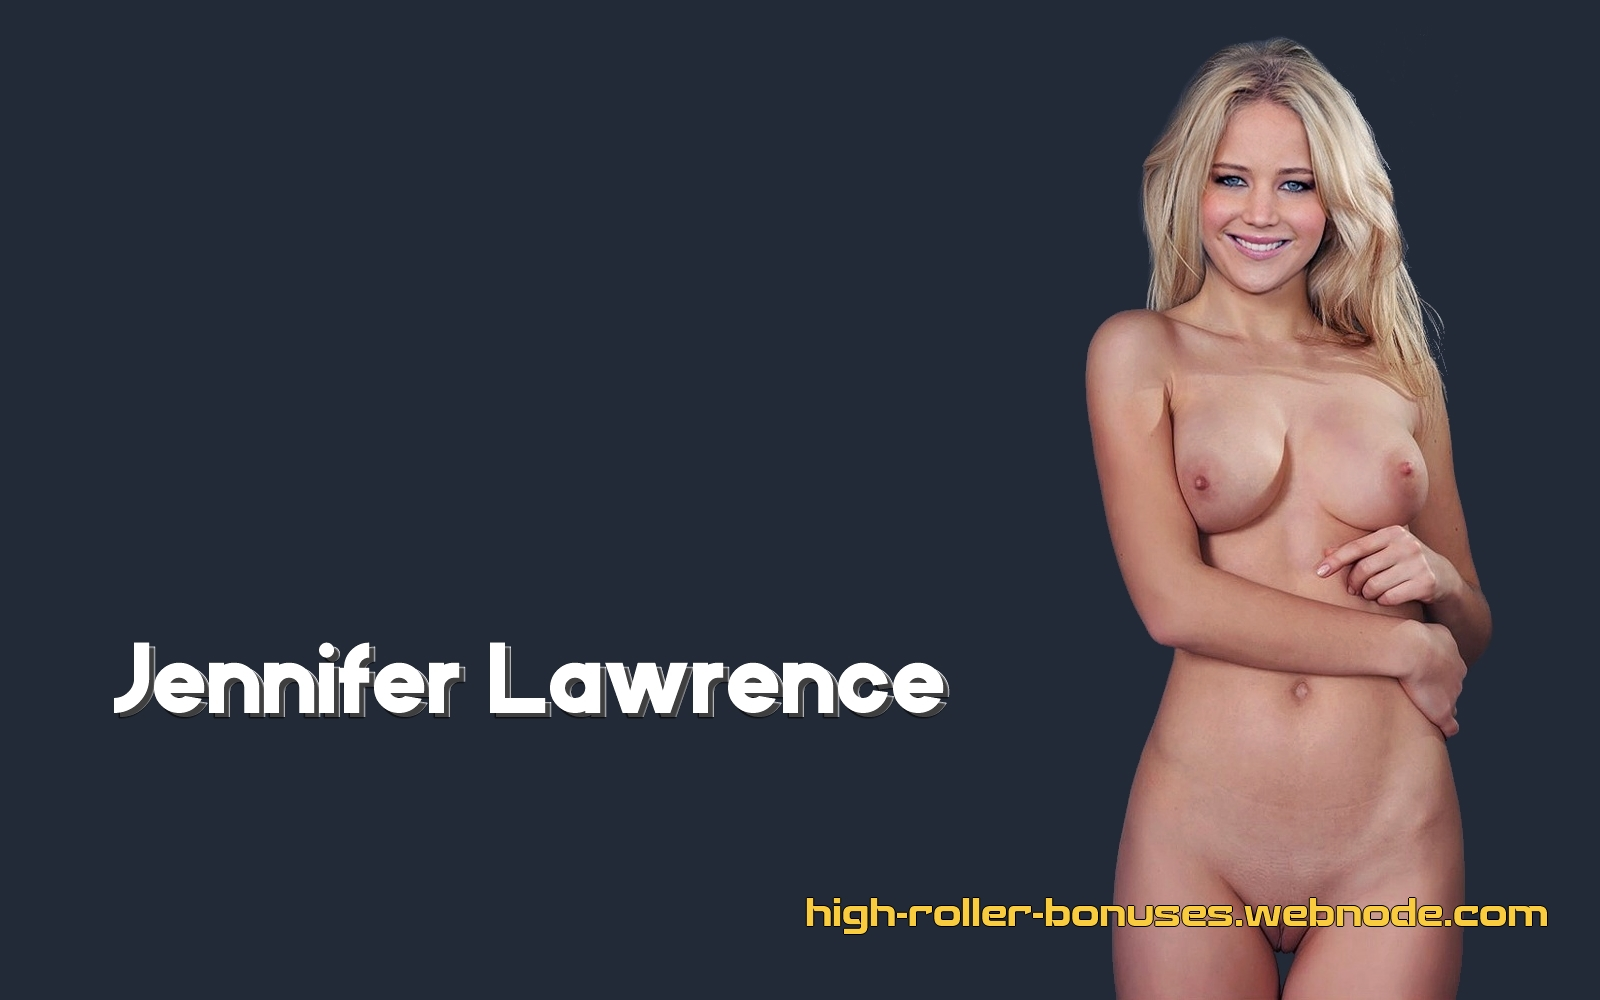 Jennifer Lawrence Fakes Images  Sexy Frauen-6053